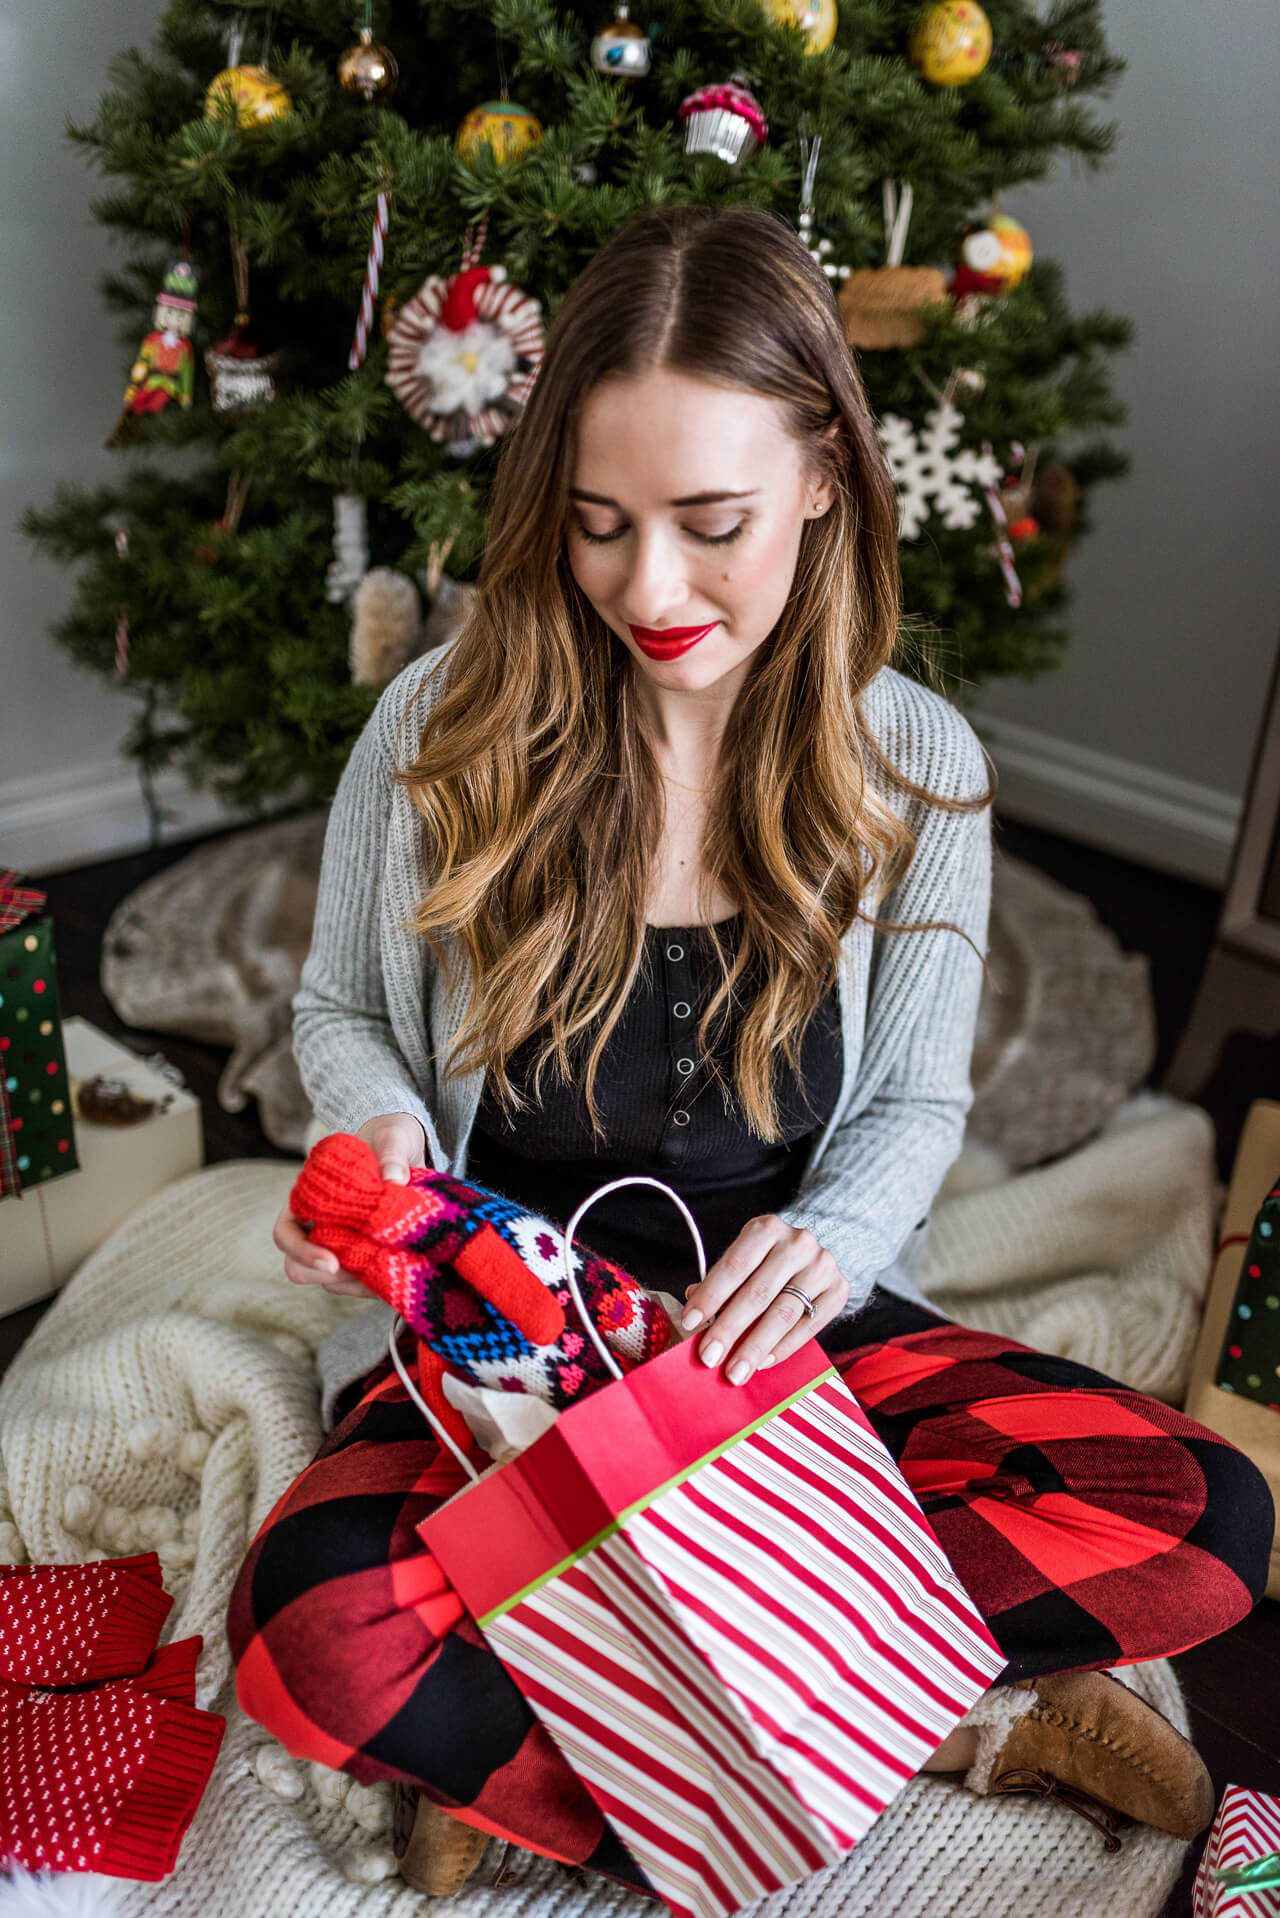 last minute gift ideas that are cute and super affordable